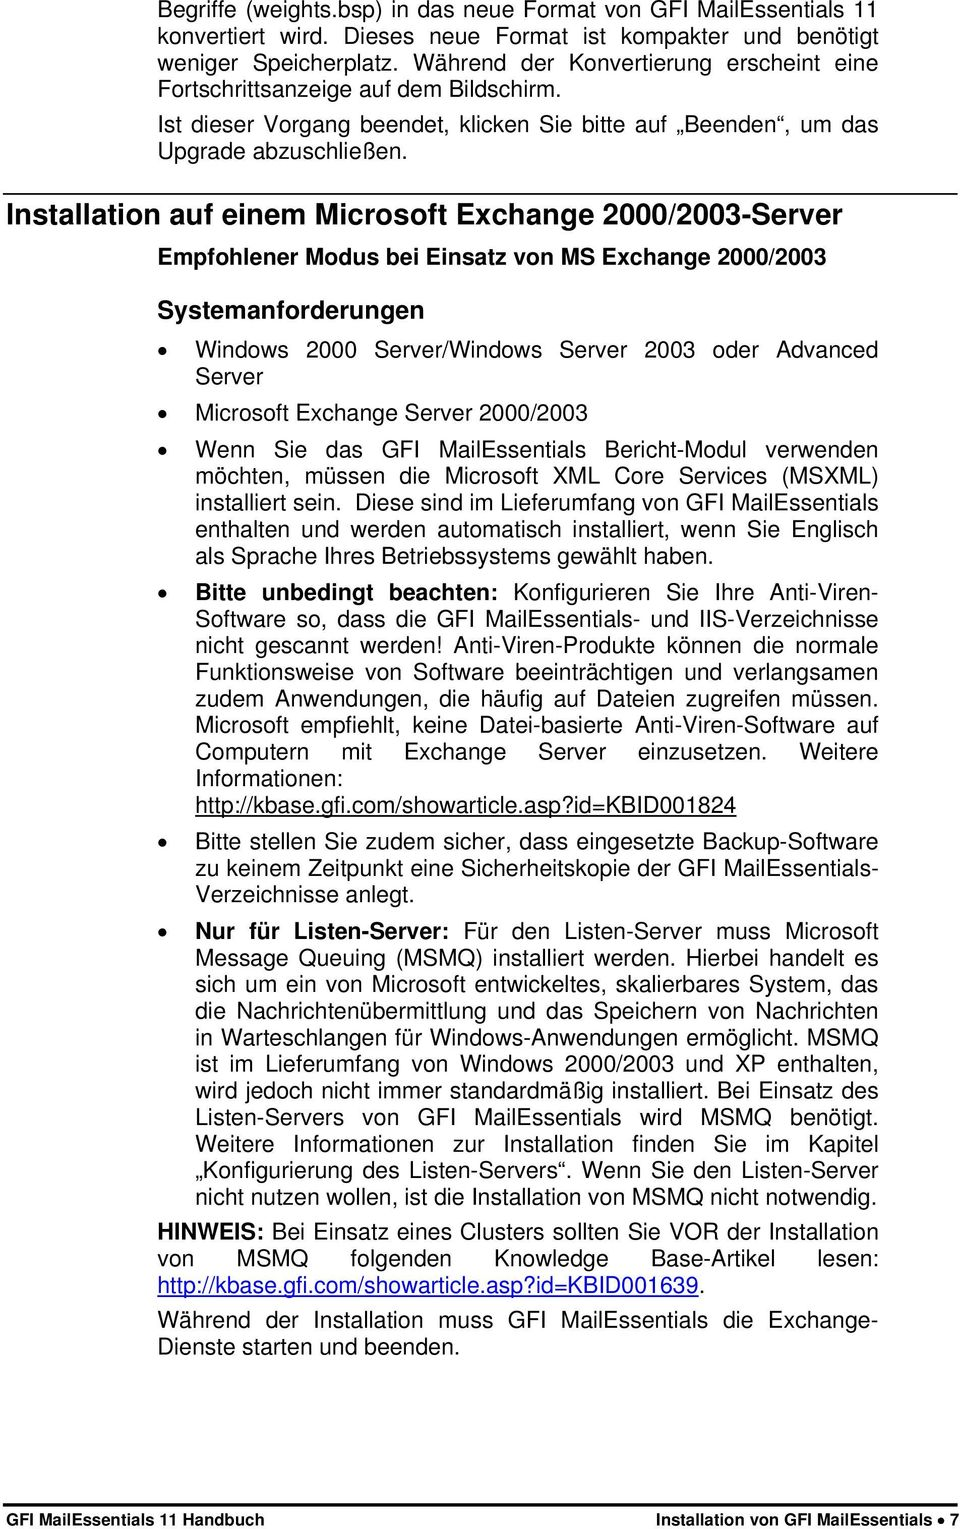 Installation auf einem Microsoft Exchange 2000/2003-Server Empfohlener Modus bei Einsatz von MS Exchange 2000/2003 Systemanforderungen Windows 2000 Server/Windows Server 2003 oder Advanced Server